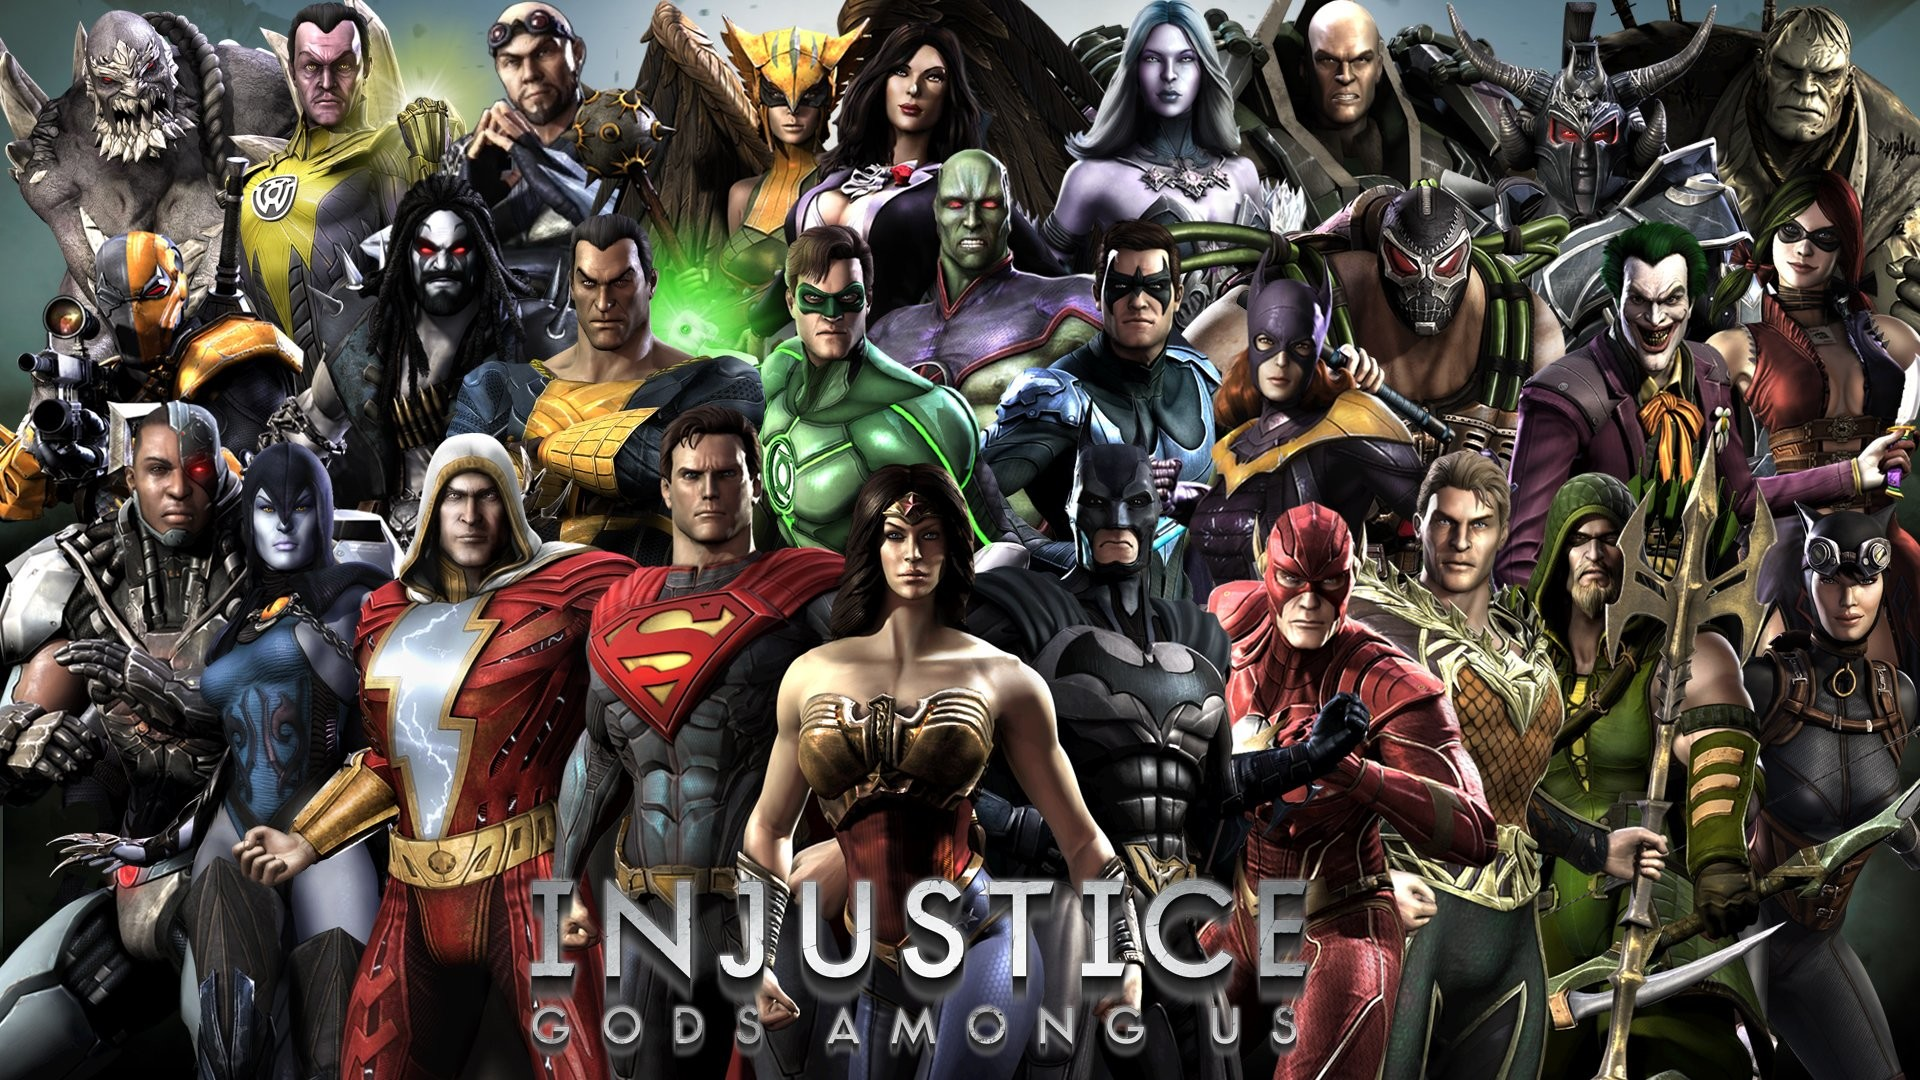 Injustice gods among us wallpapers 85 images 1920x1080 video game injustice gods among us wallpaper voltagebd Gallery